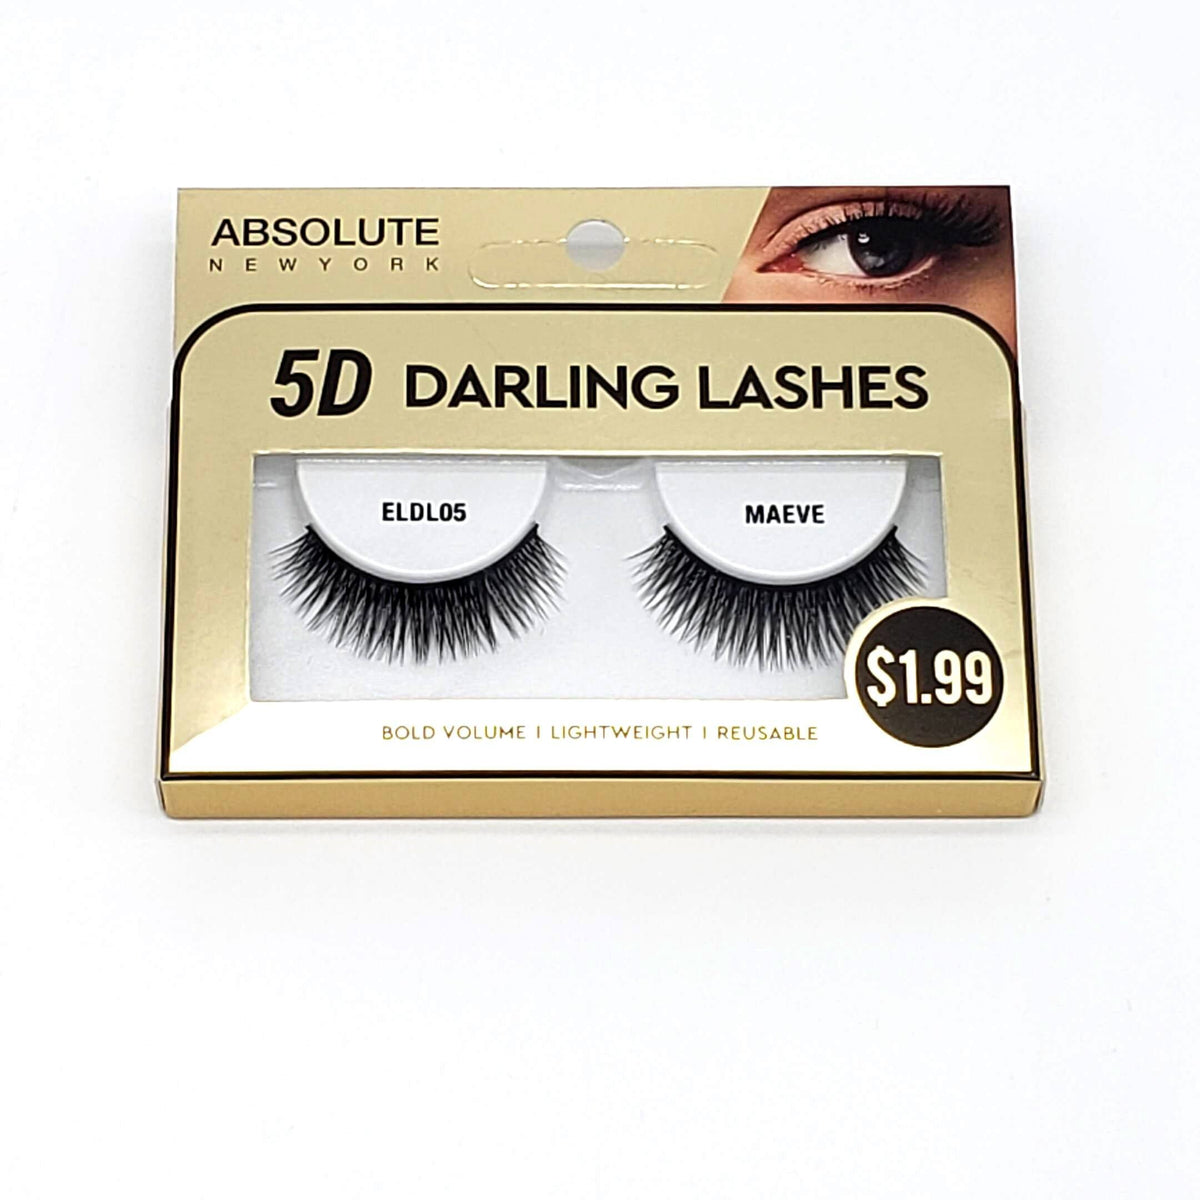 Absolute 5D Darling Lash #ELDL05 Maeve (6PC)